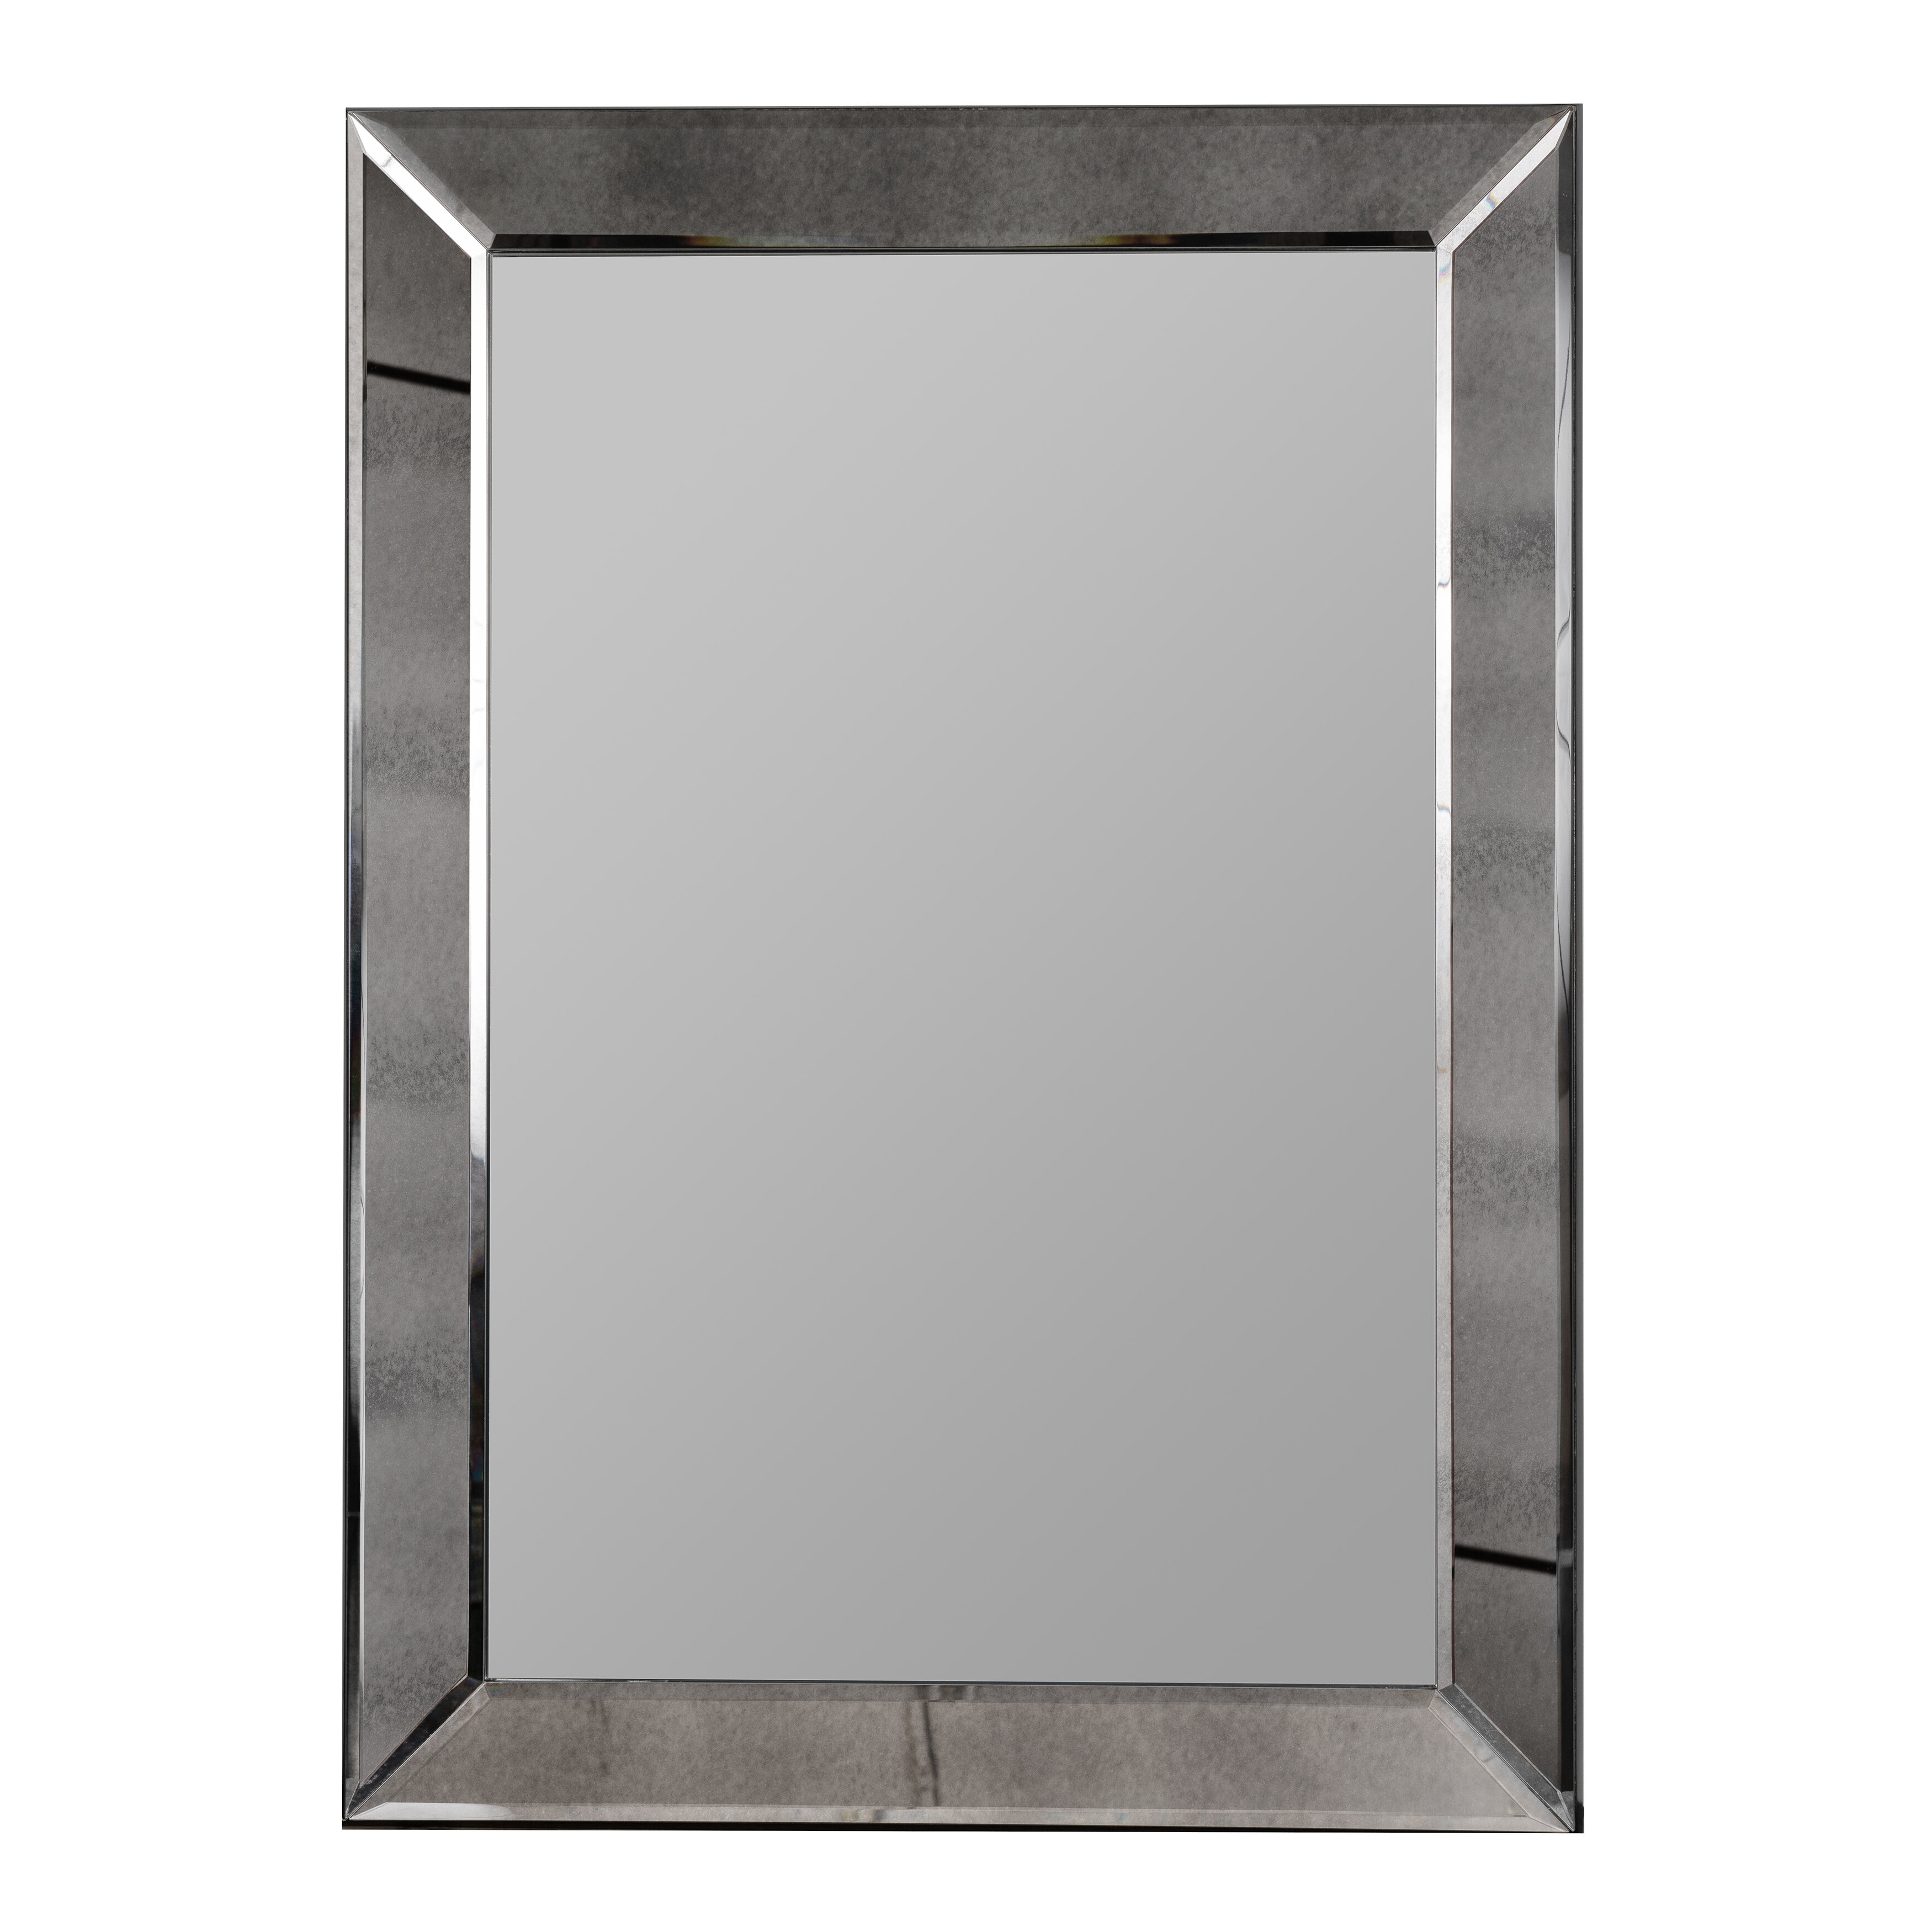 Modern & Contemporary Asian Inspired Mirror | Allmodern Intended For Berinhard Accent Mirrors (View 16 of 20)